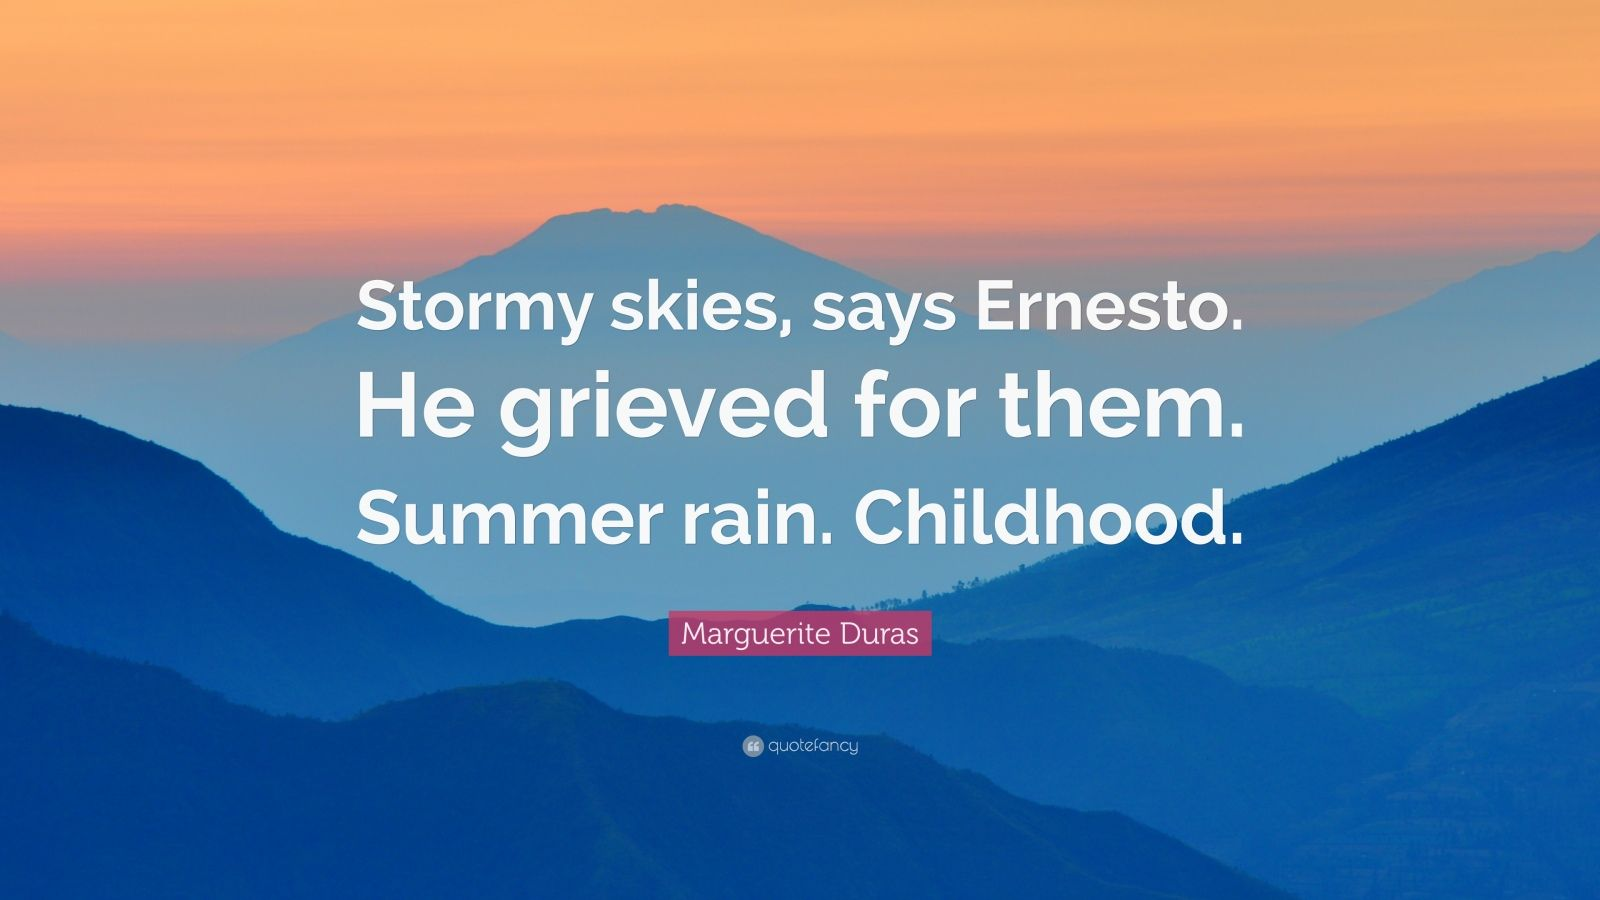 """Marguerite Duras Quote: """"Stormy skies, says Ernesto. He grieved for them. Summer rain. Childhood."""""""